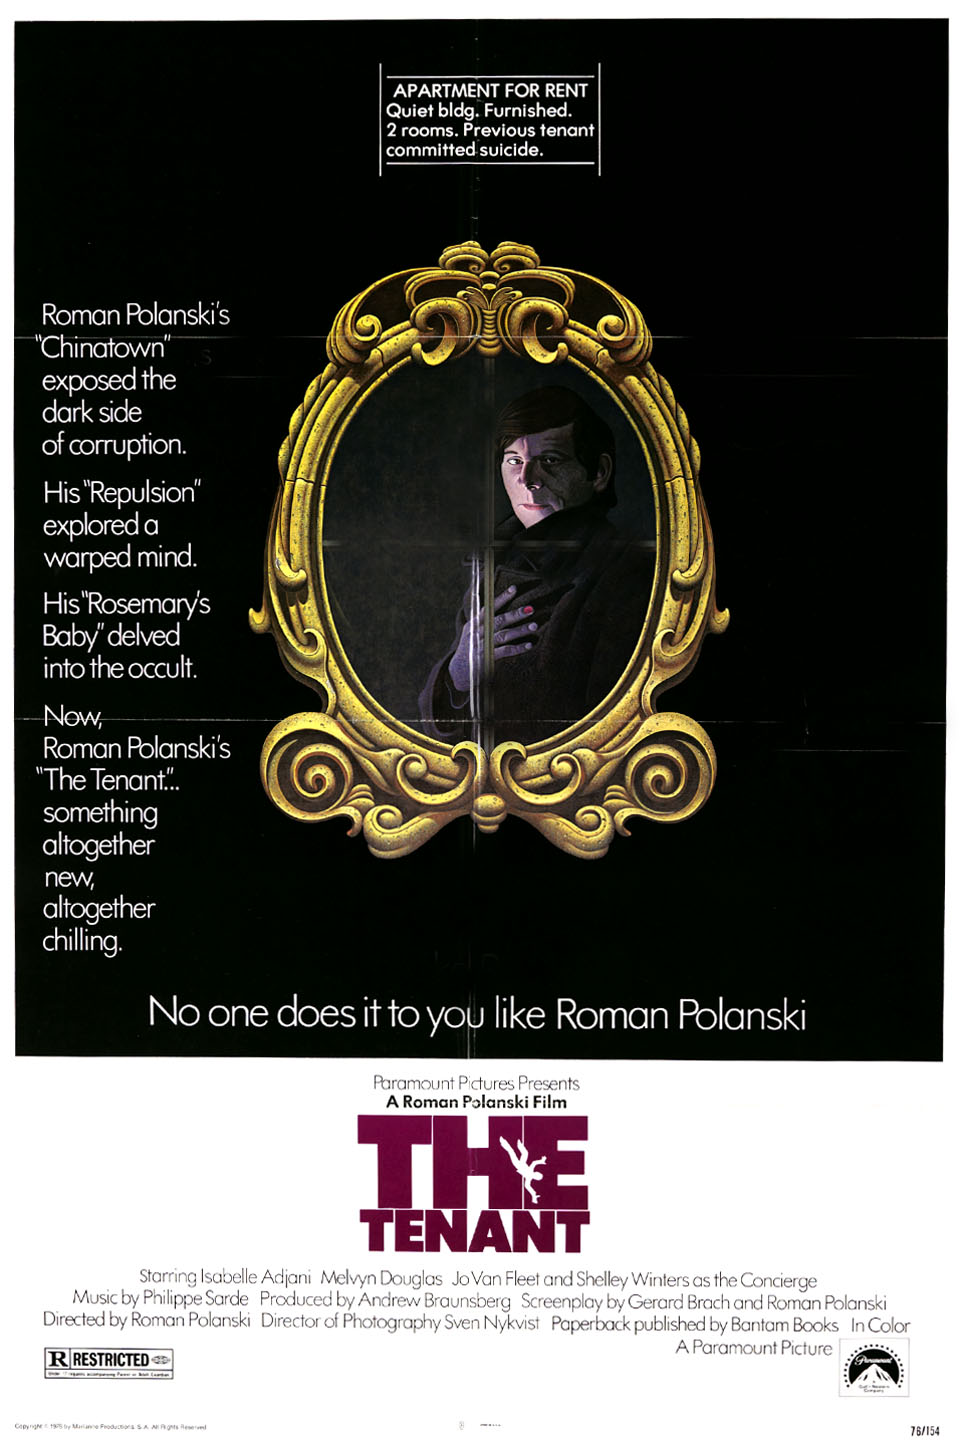 The Tenant (1976) - Directed by: Roman PolanskiStarring: Roman Polanski, Isabelle Adjani, Melvyn DouglasRATED: RRunning Time: 2h 6mTMM SCORE: 4.5 STARS OUT OF 5STRENGTHS: Direction, Writing, Cinematography, Pacing, ActingWEAKNESSES: Also Pacing